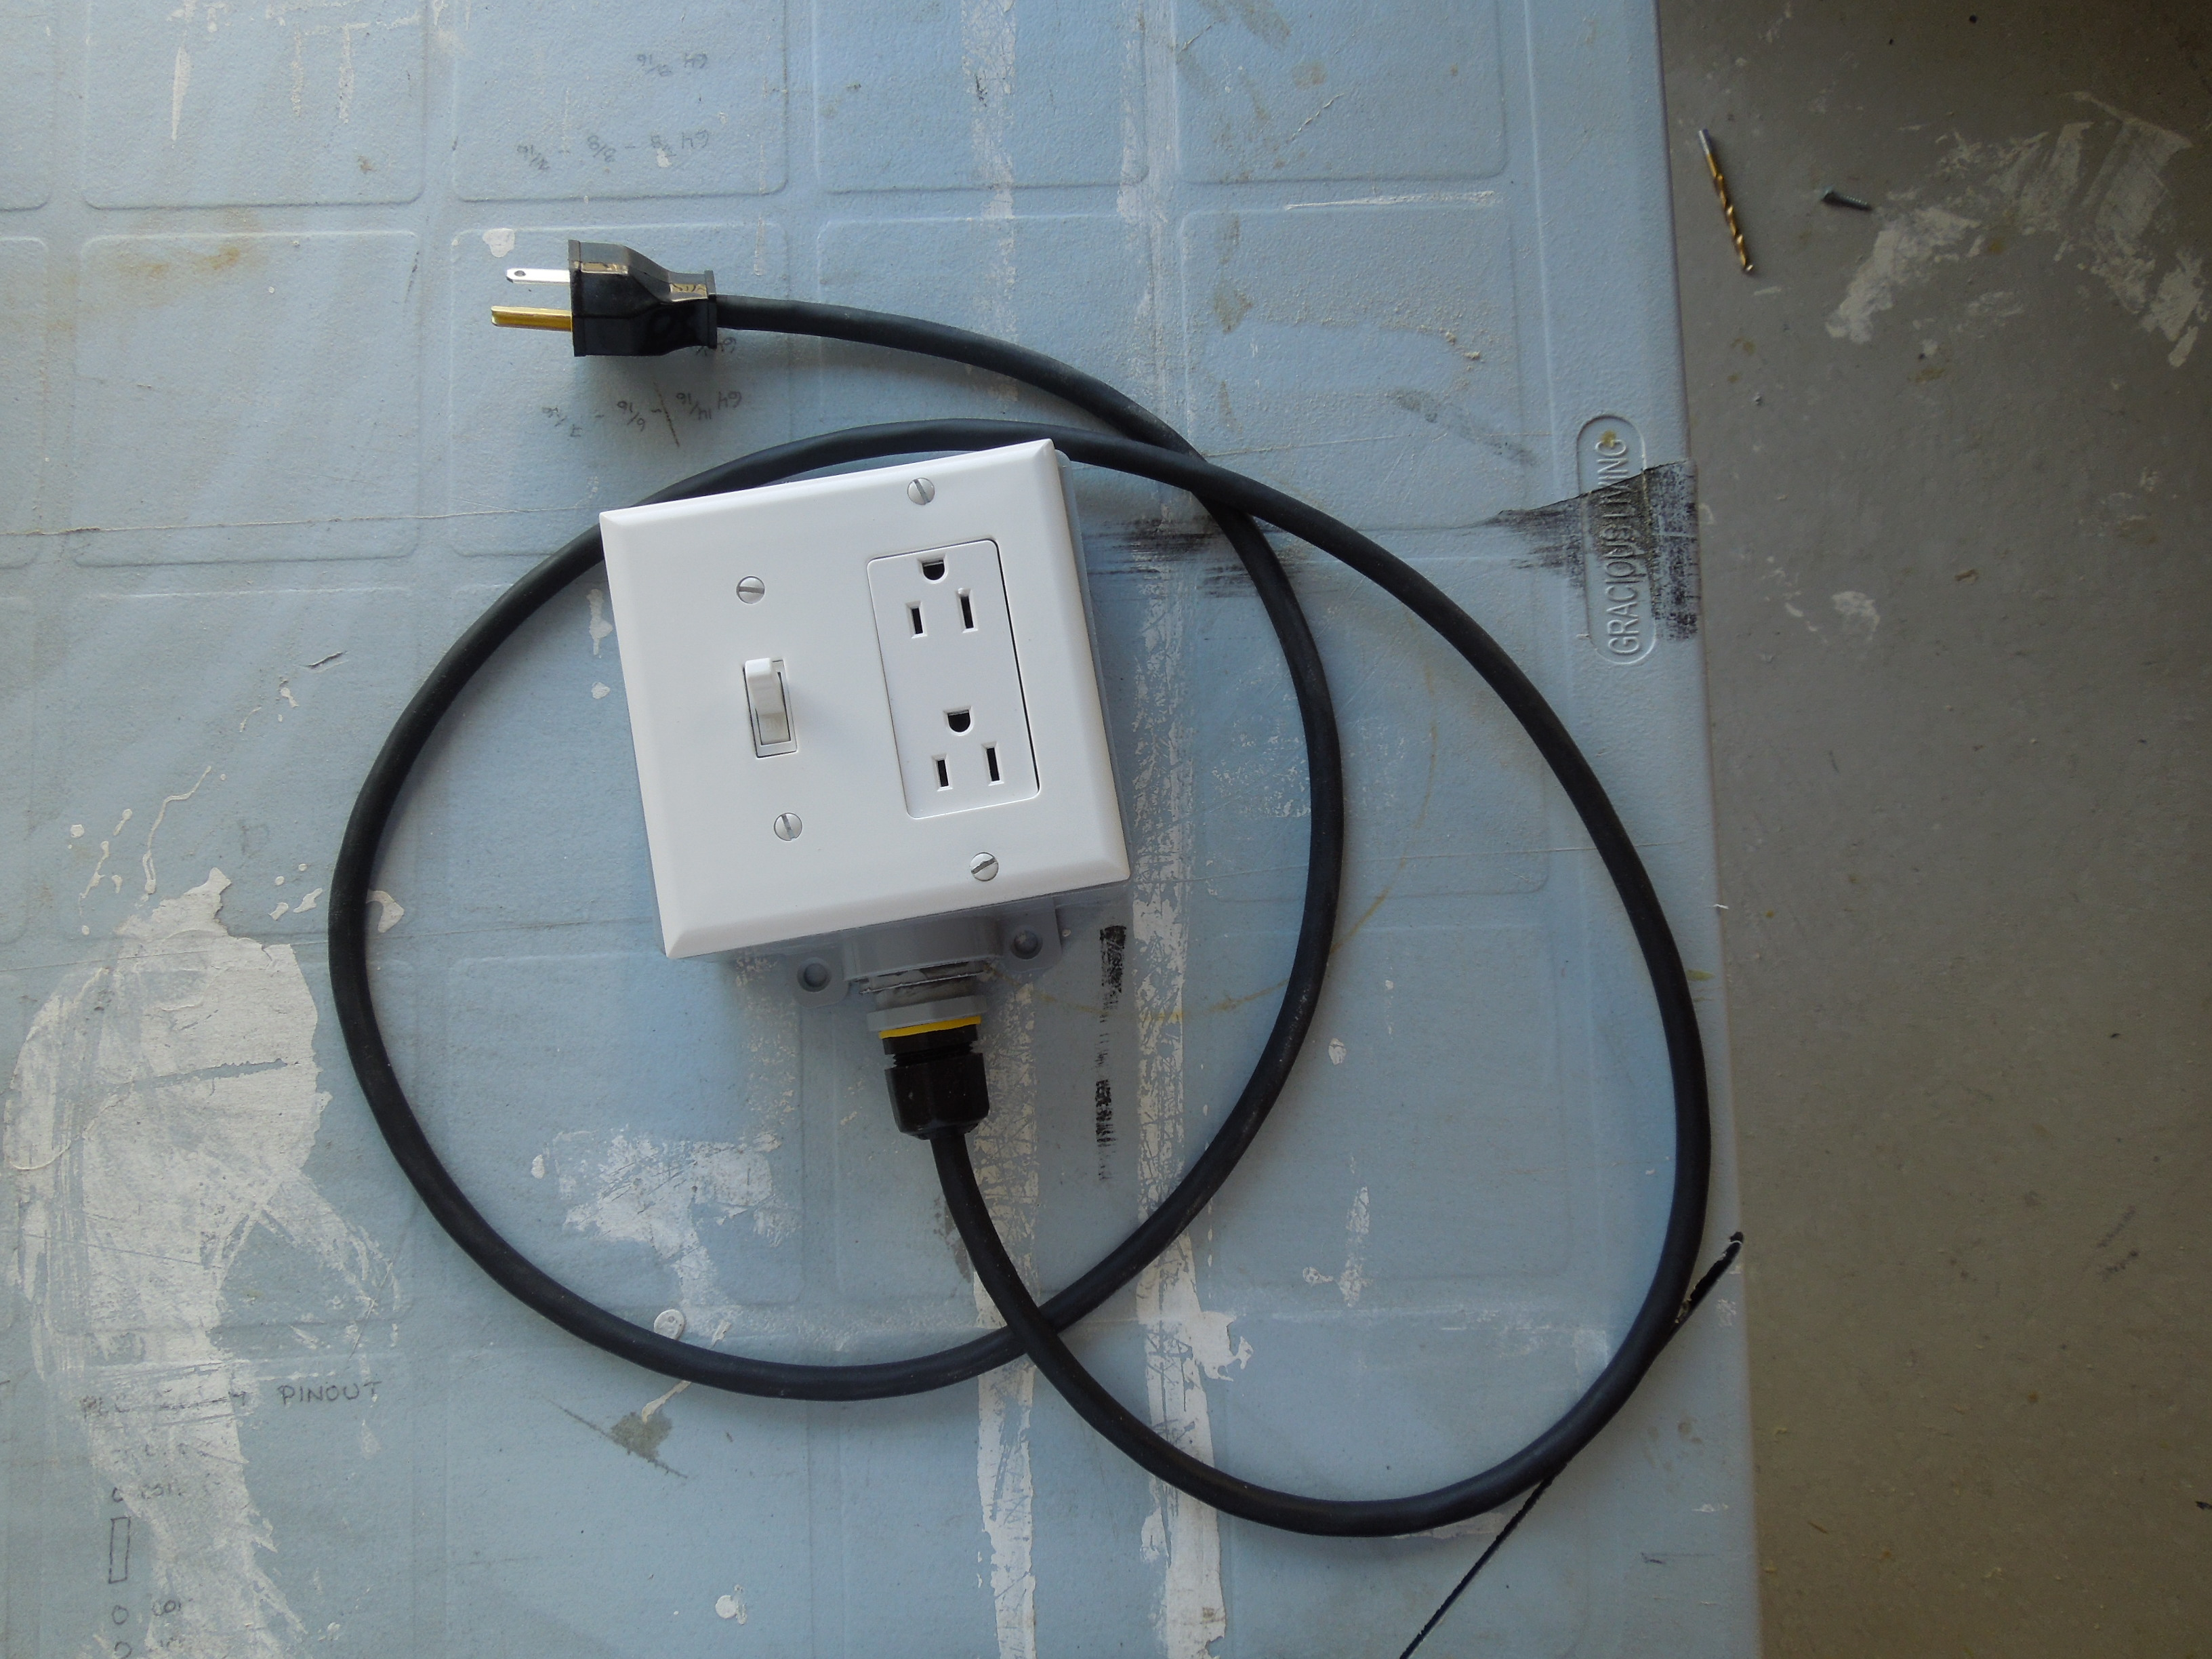 Rewiring An Extension Cord Which Colors Best Secret Wiring Diagram A Light Fixture To Diy With Built In Switch Safe Quick And Simple 5 Rh Instructables Com End